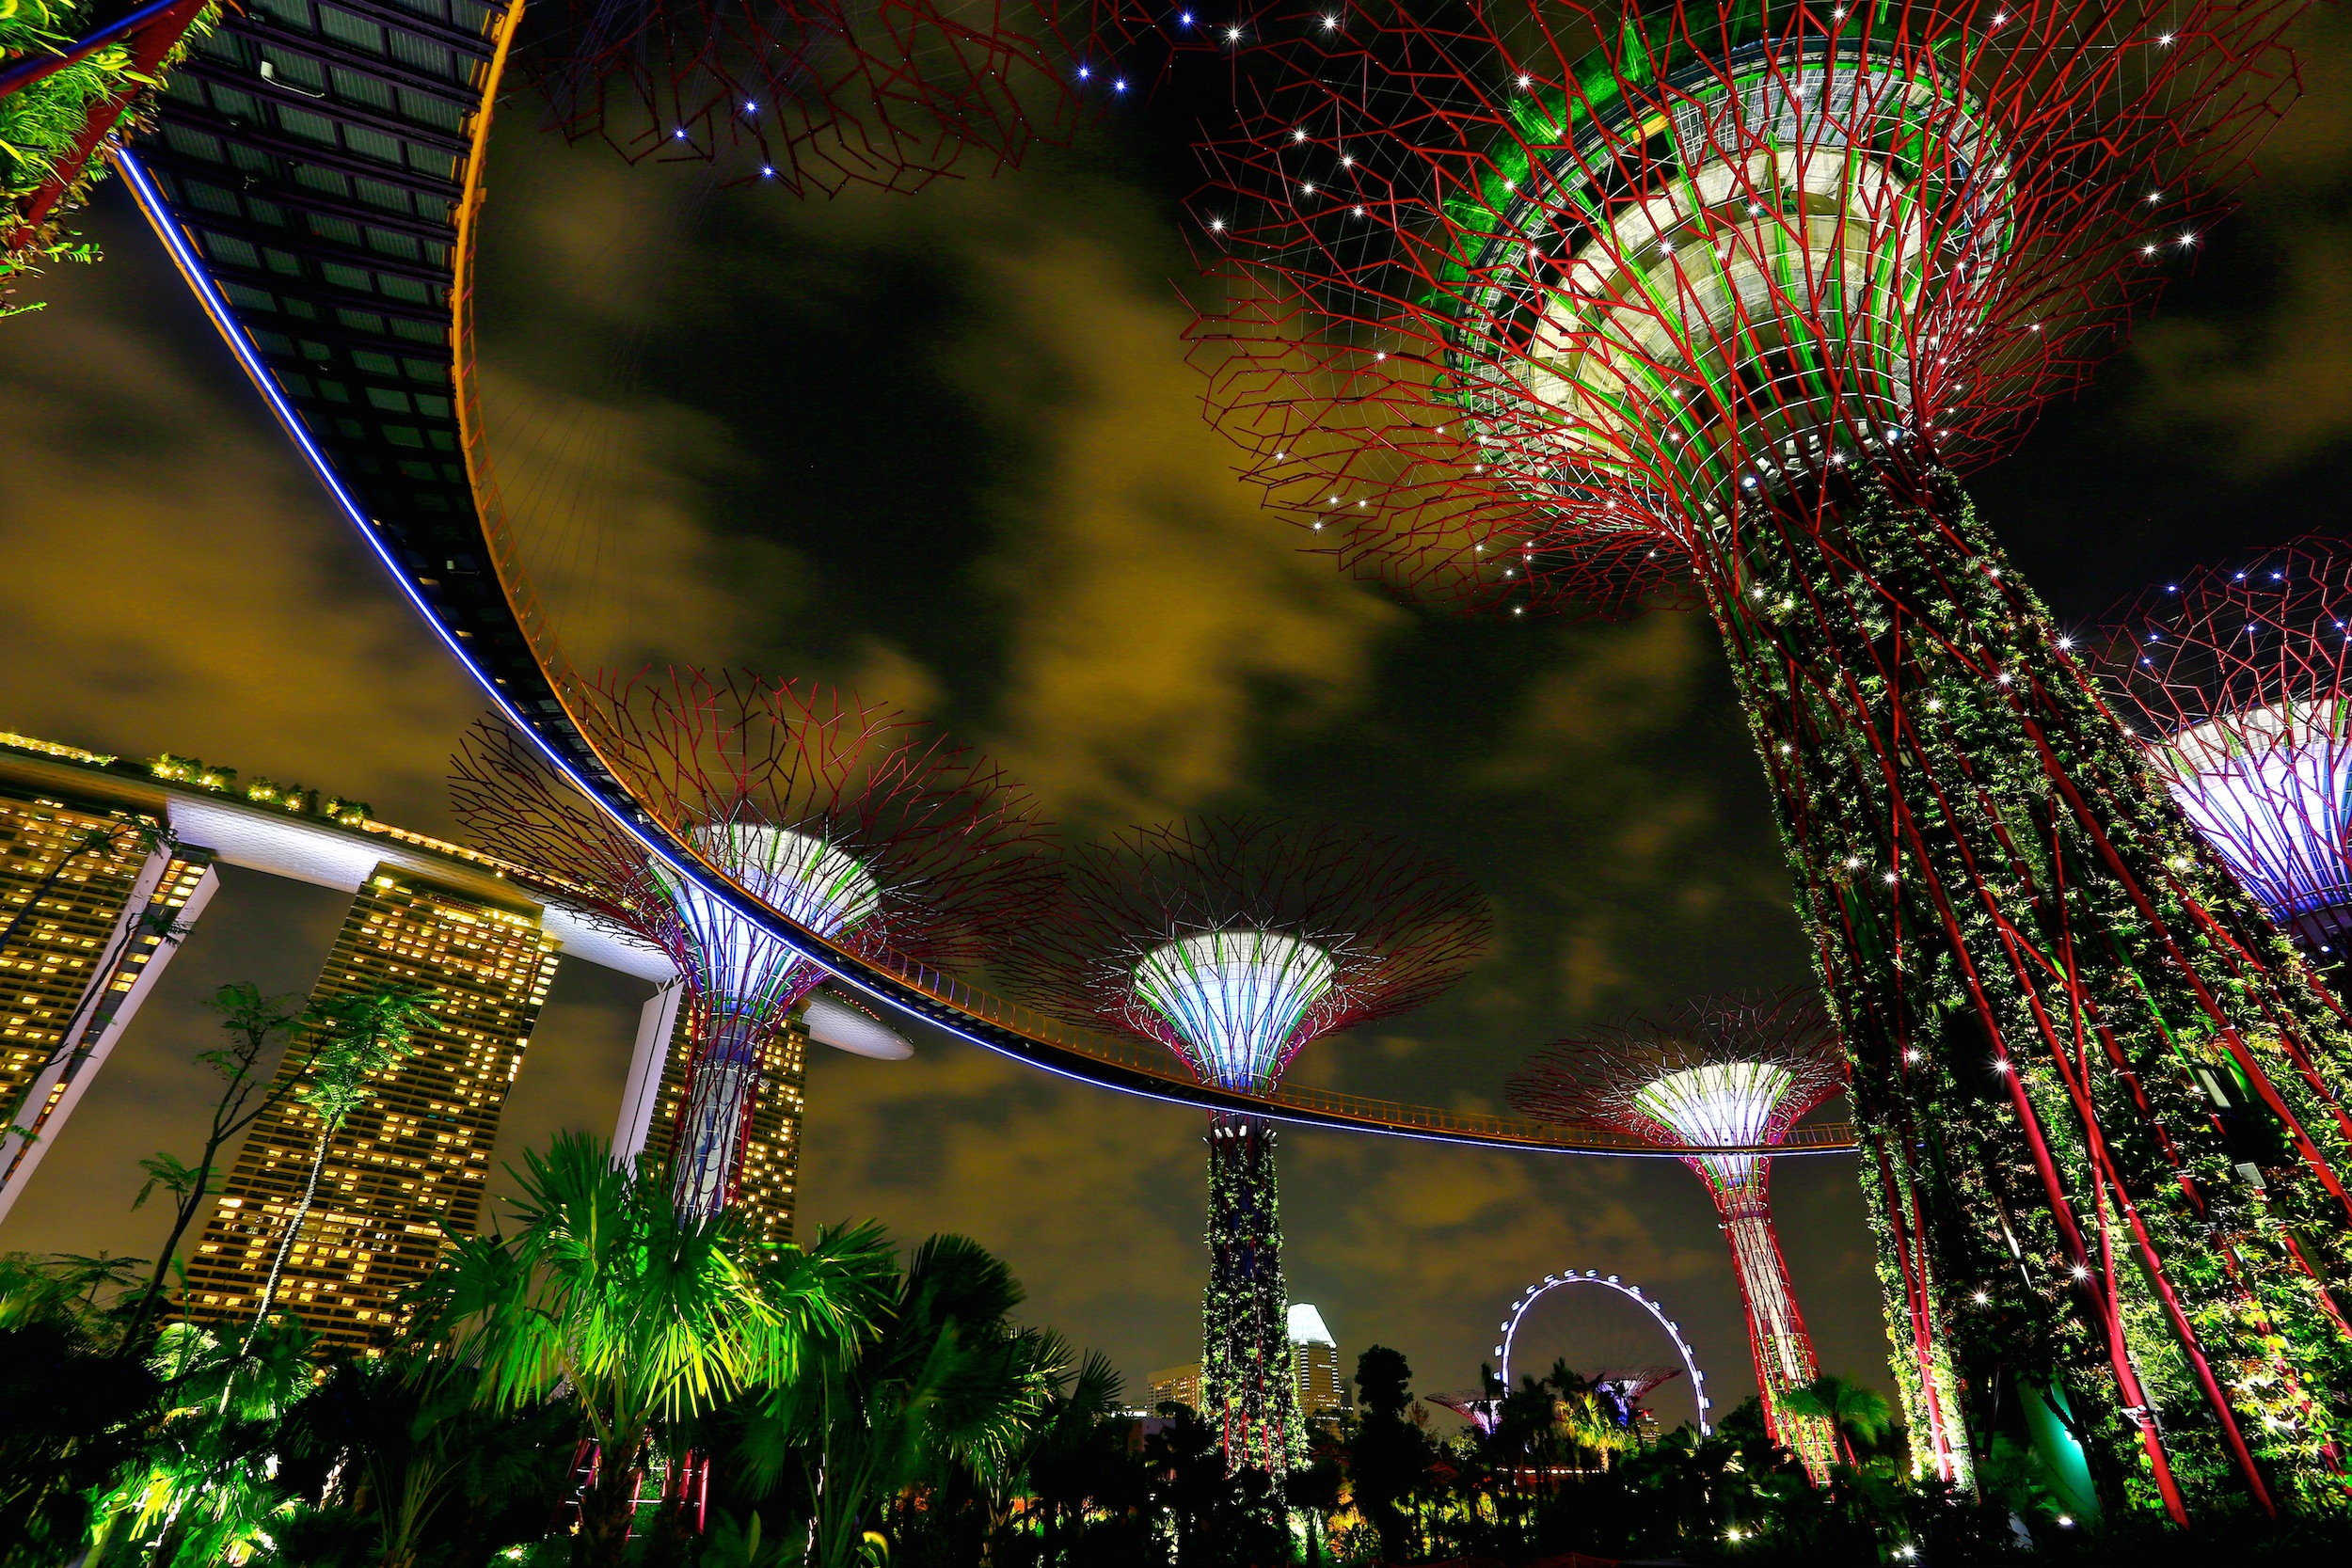 Night time view of supertrees taken from below showing Singapore city lights in the distance